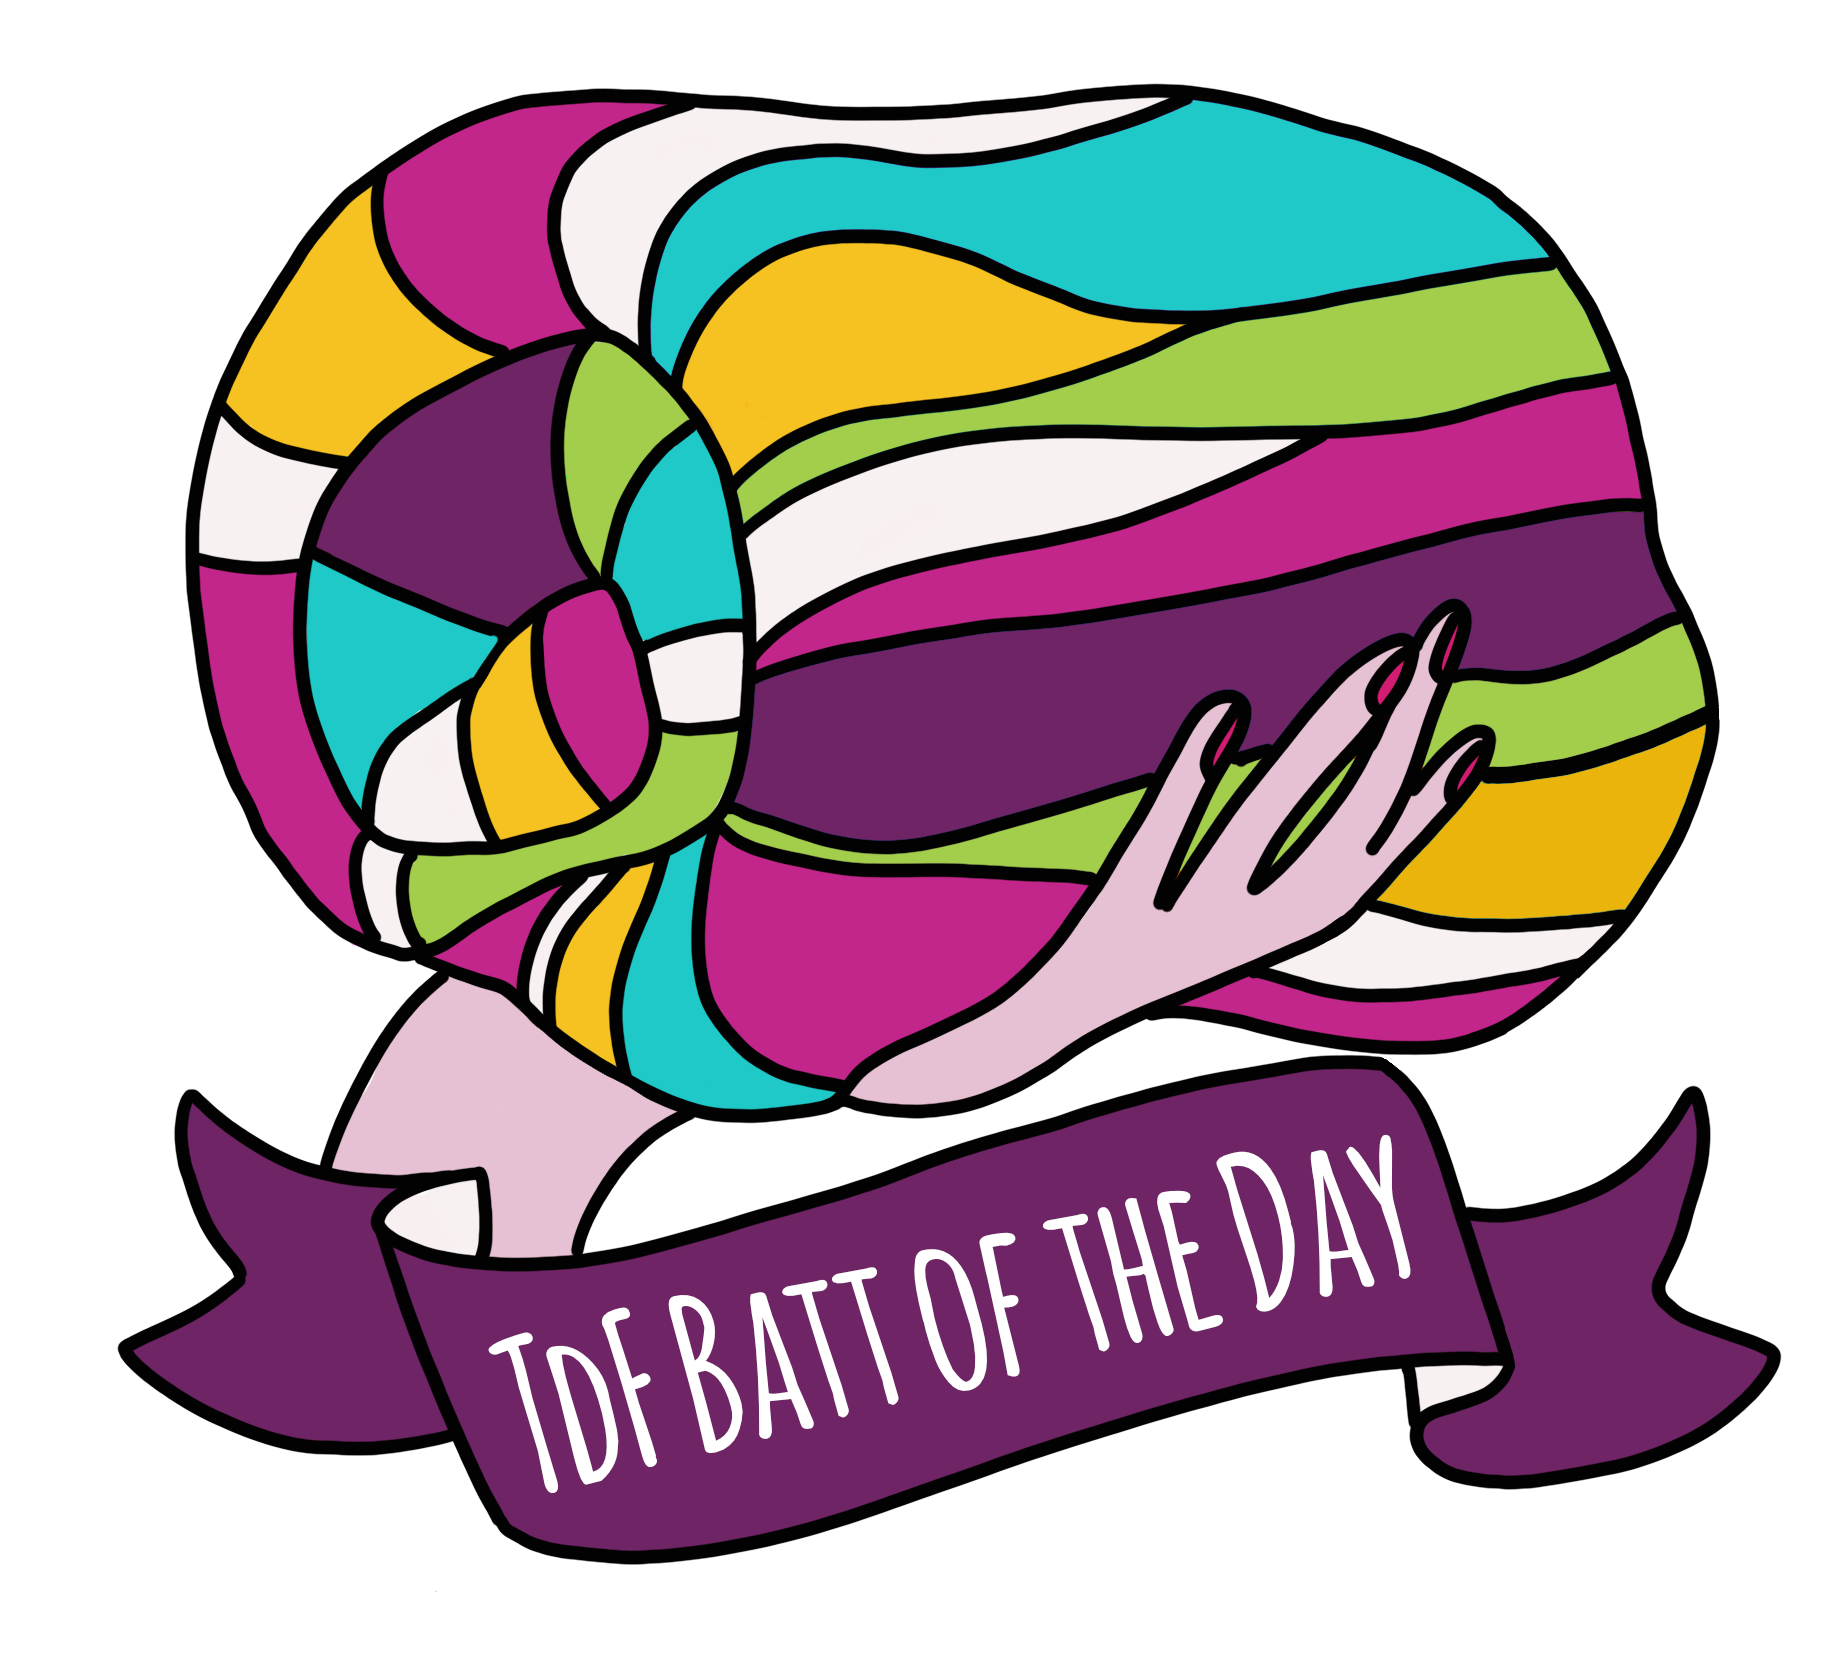 TdF 2019 Batt of the Day | Day 4